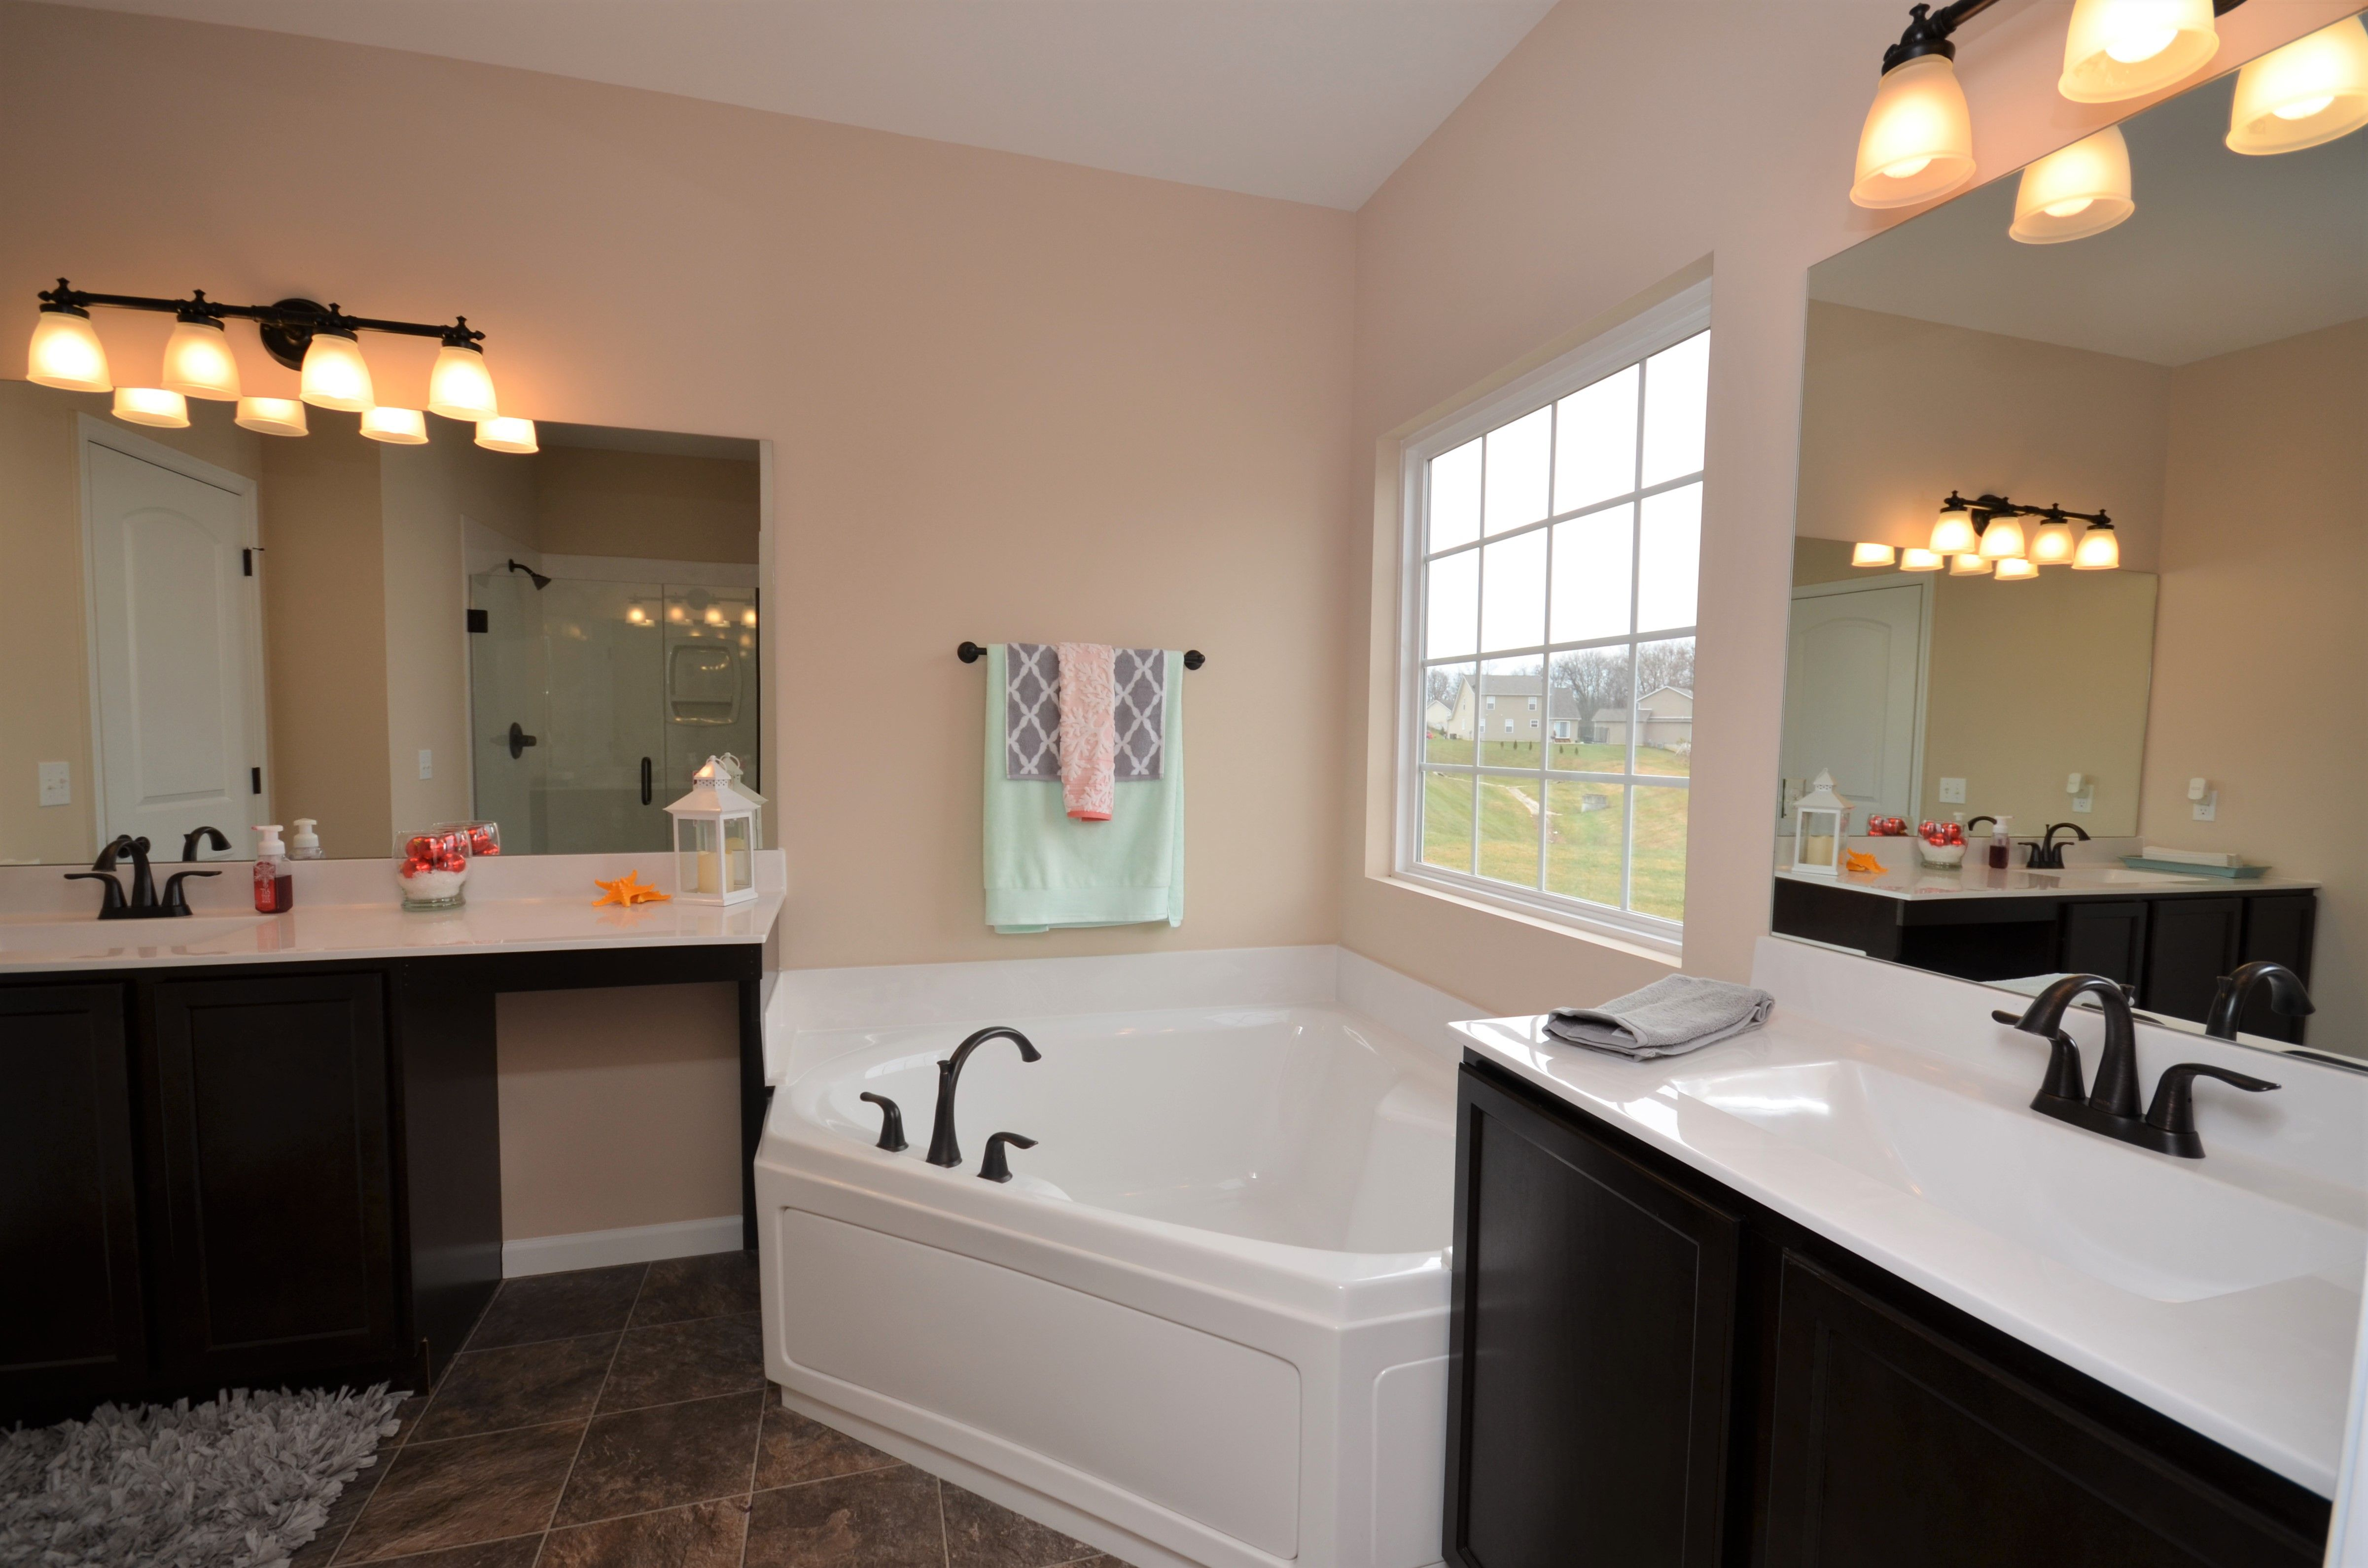 Bathroom featured in The Verona By Cannon Builders, Inc.  in St. Louis, MO